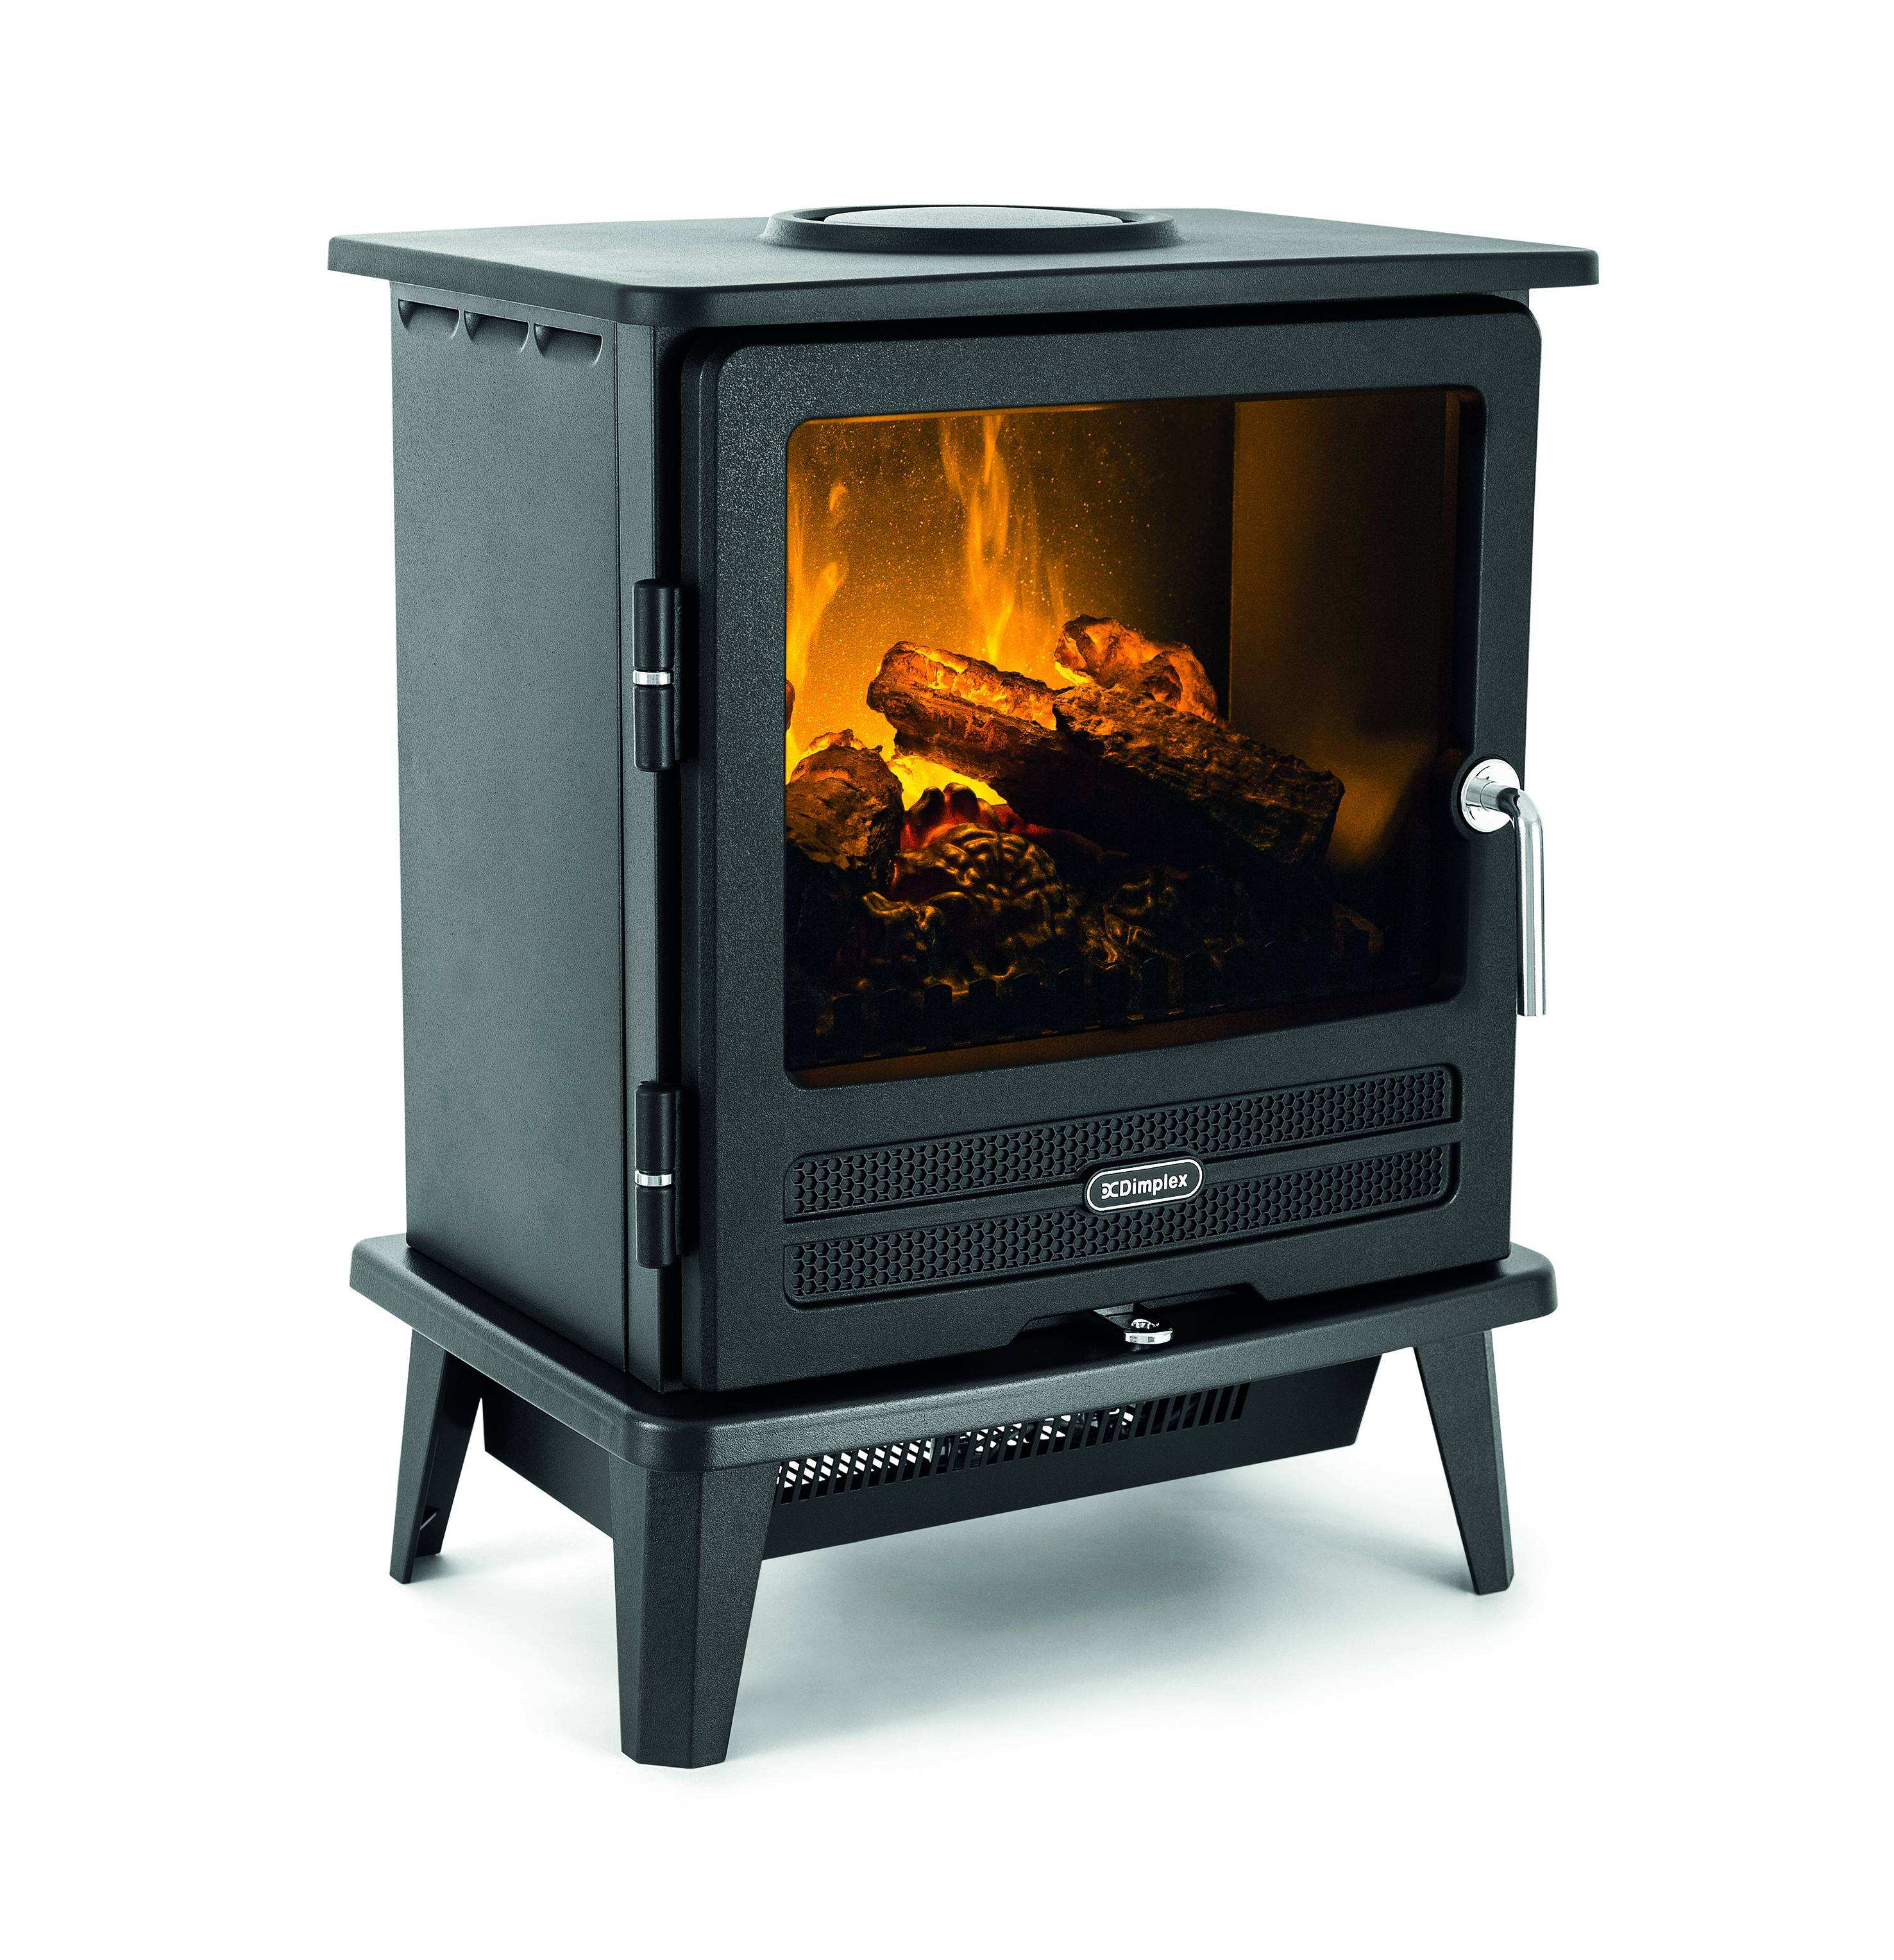 dimplex stoves awesome dimplex willowbrook stove meeting demand for premium of dimplex stoves